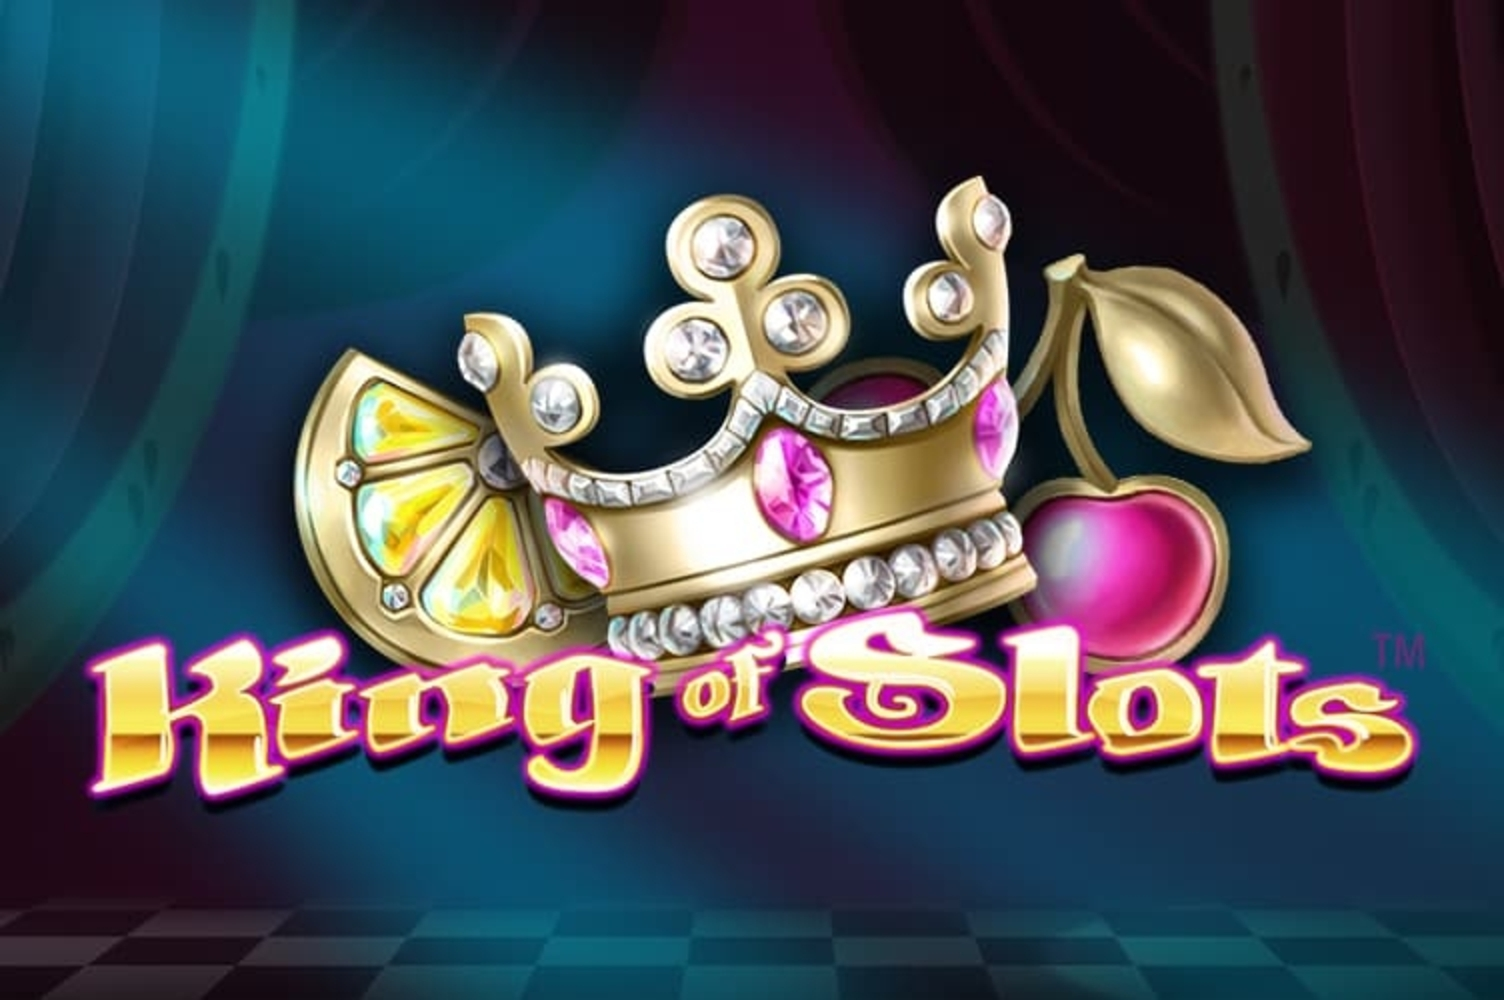 The King of Slots Online Slot Demo Game by NetEnt